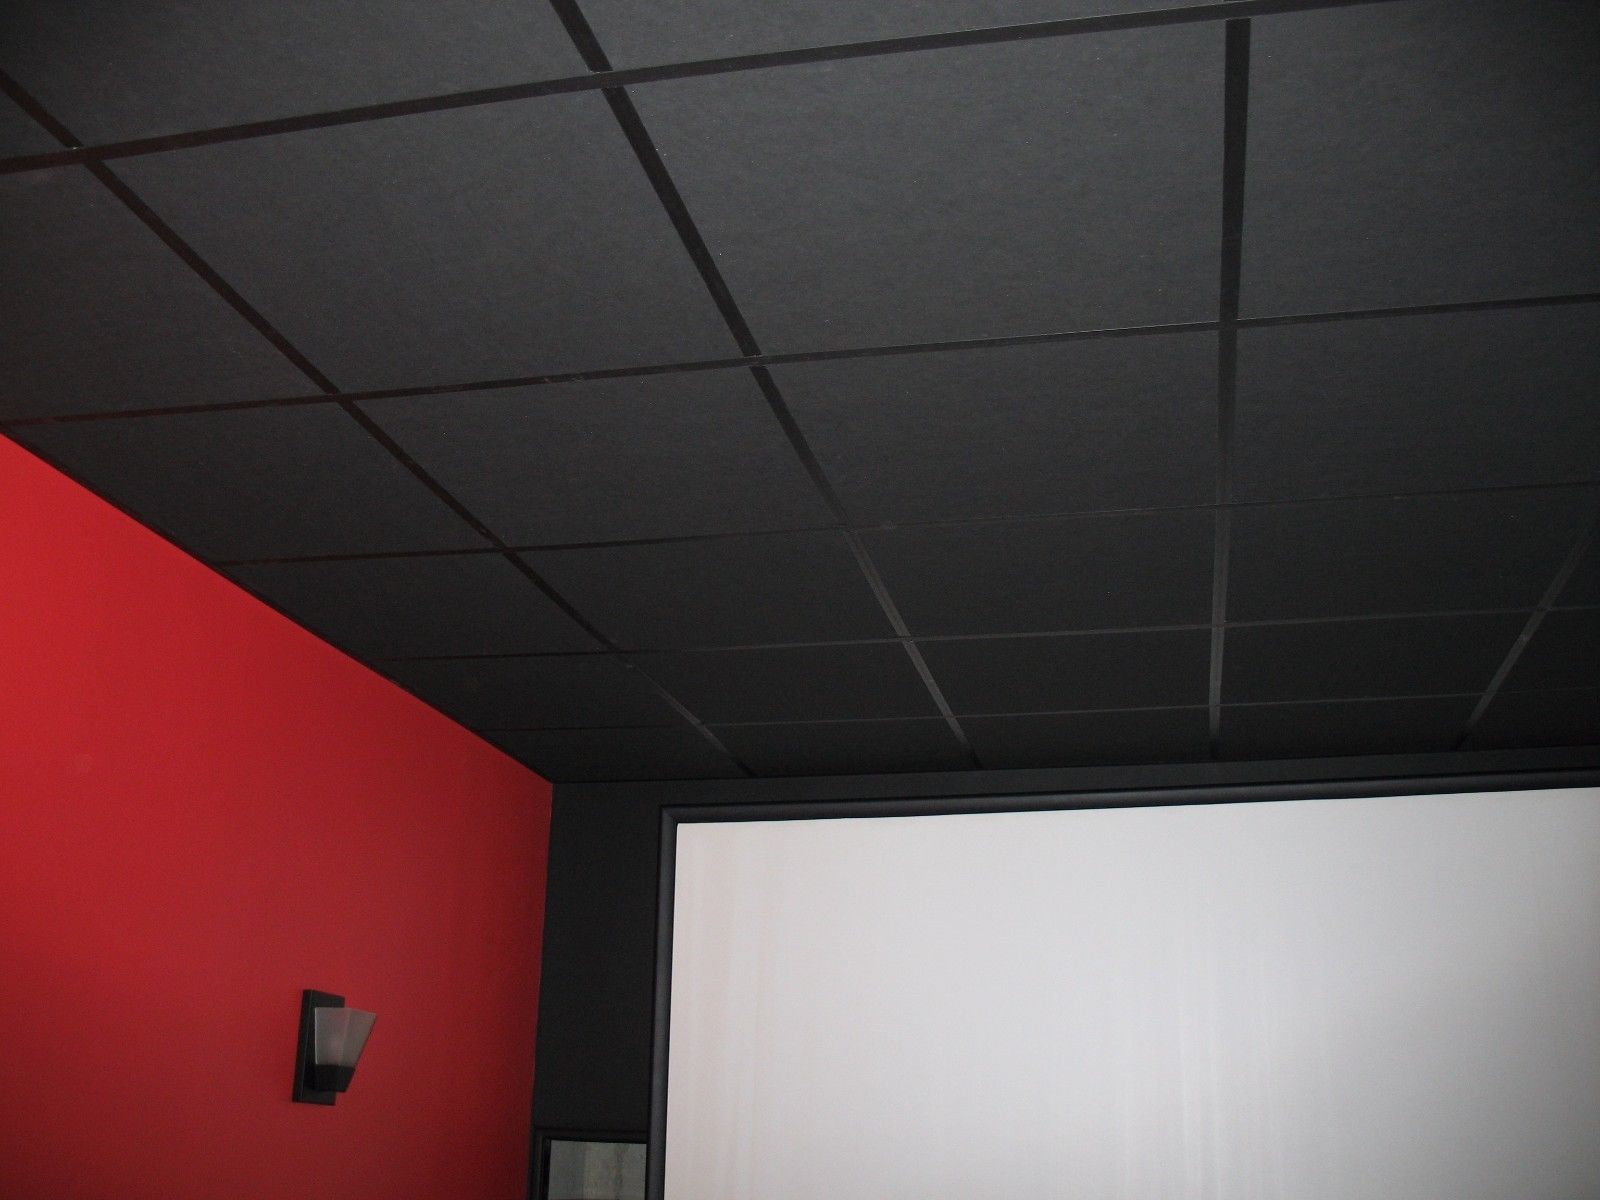 Home Improvement In 2020 Drop Ceiling Tiles Dropped Ceiling Acoustic Ceiling Tiles